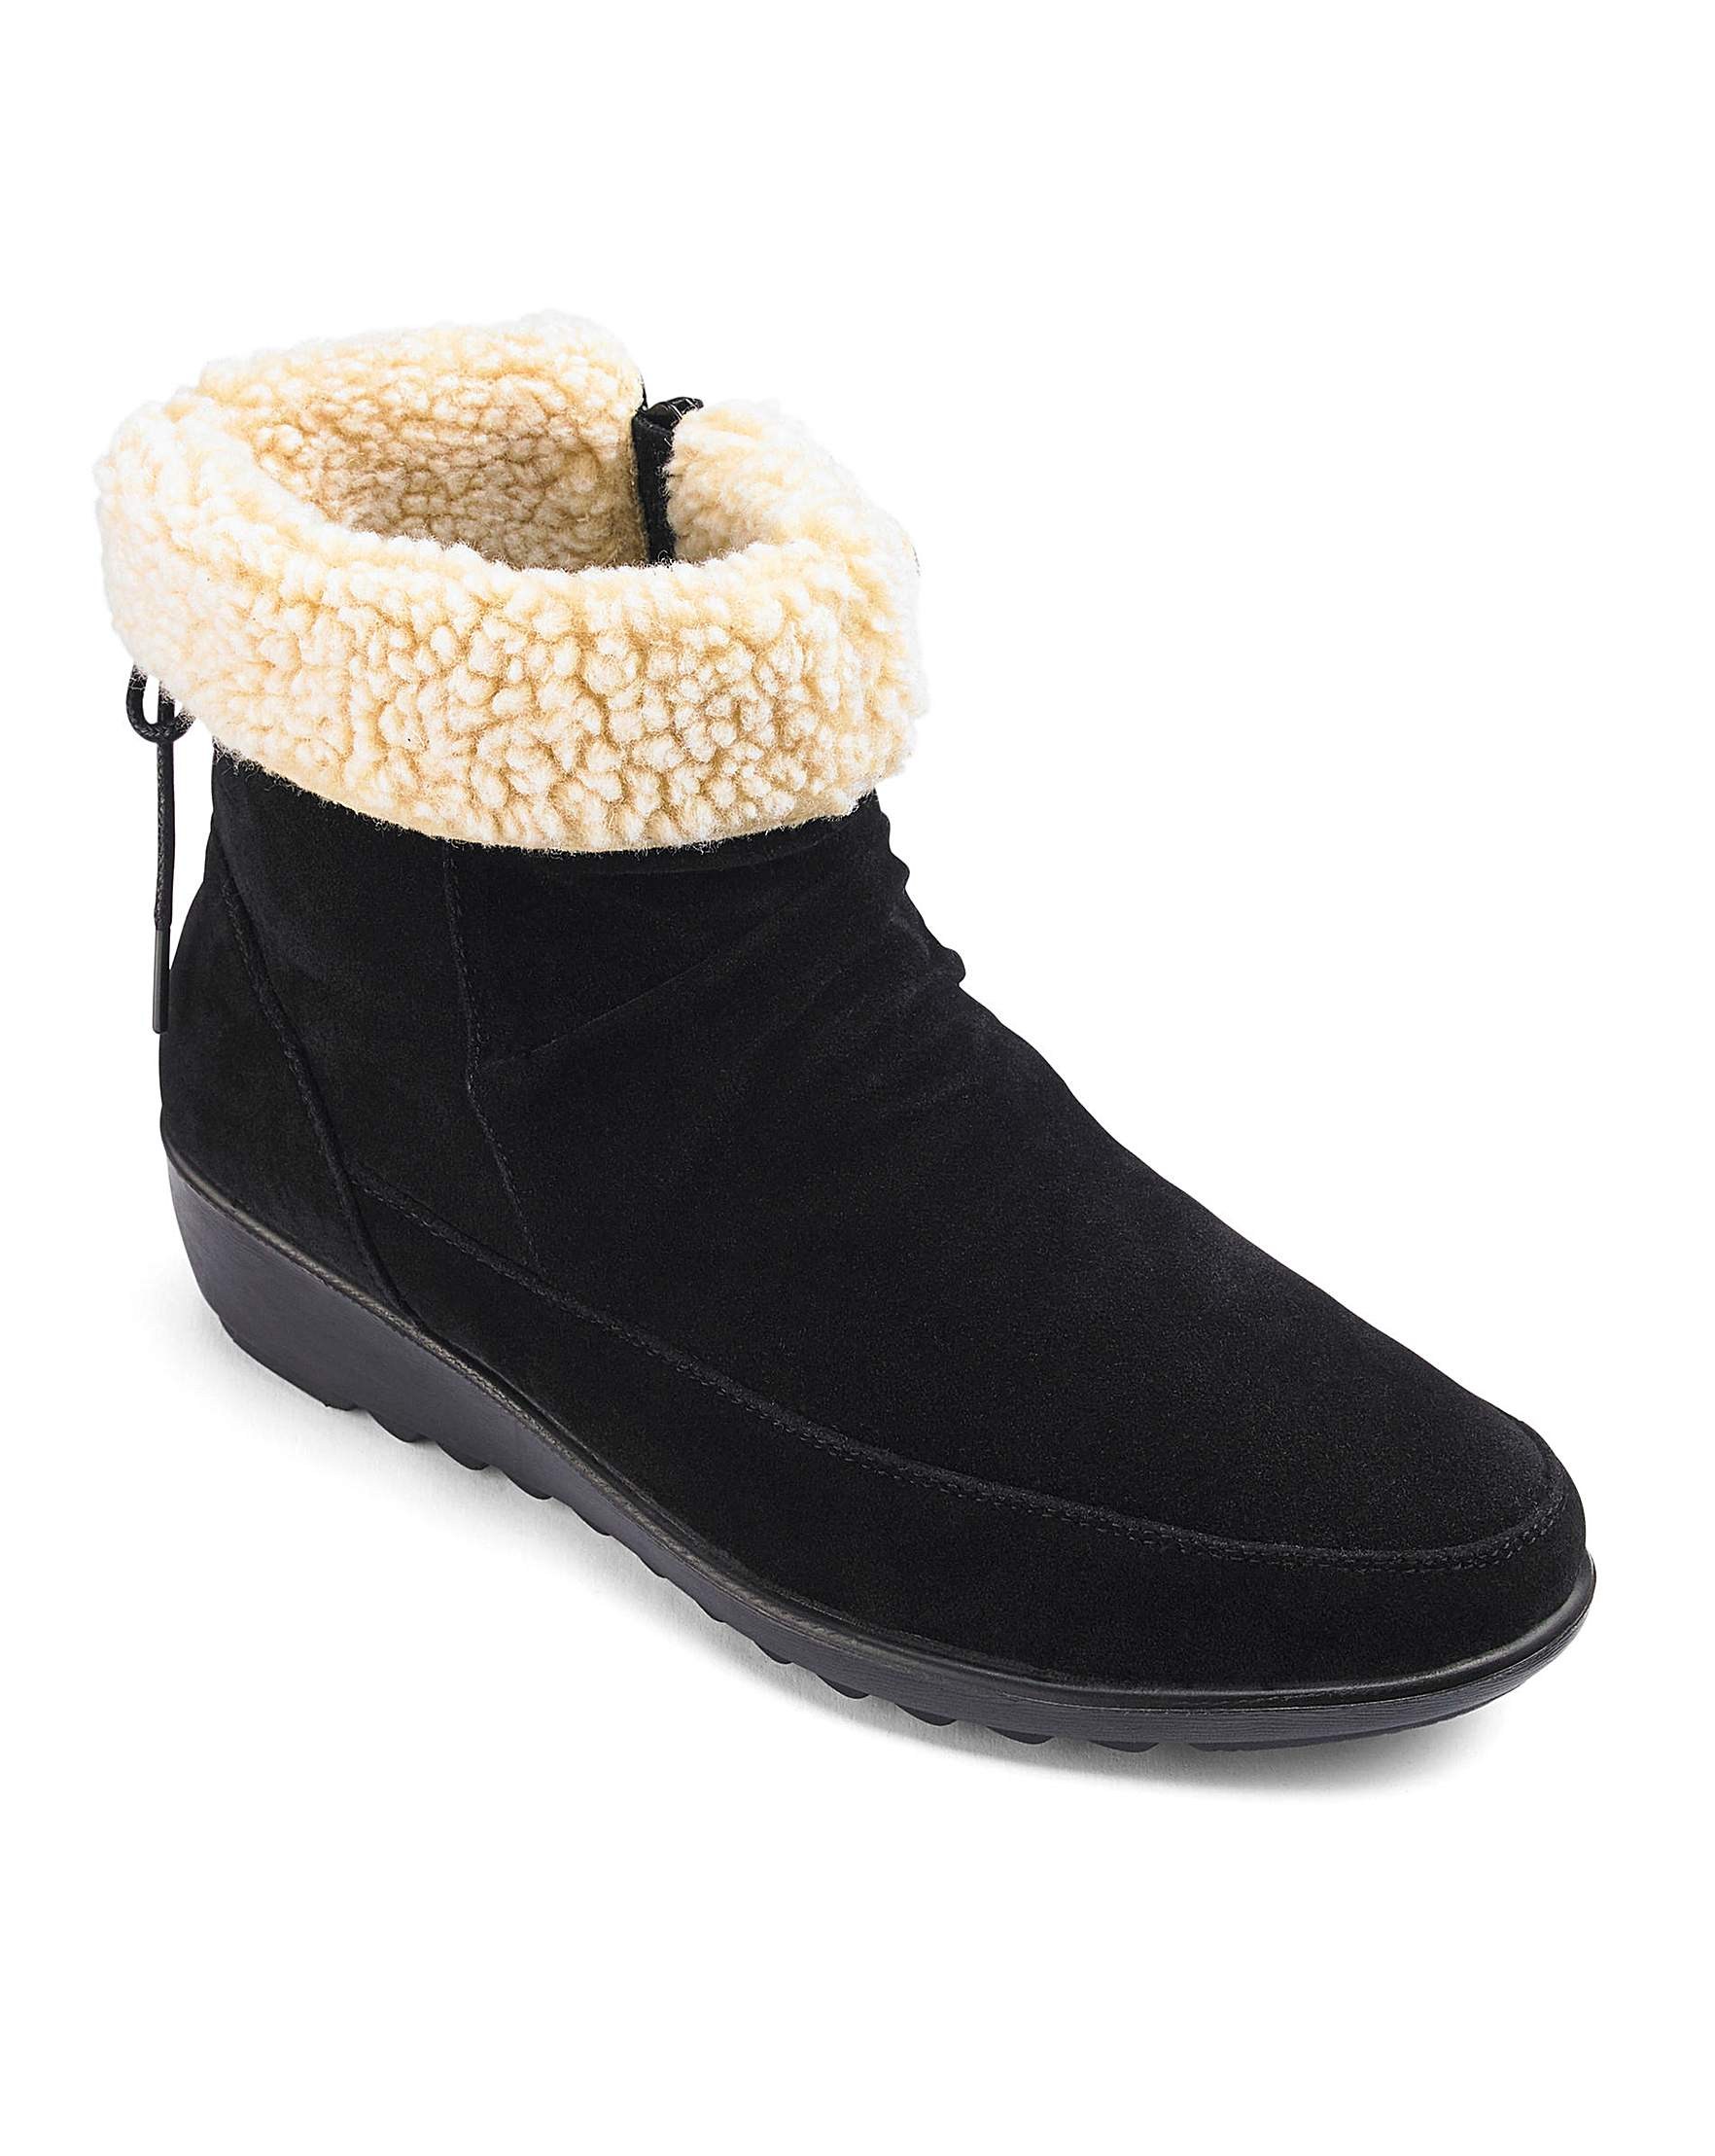 6c86b3ed9c7 Cushion Walk Warmlined Side Zip Ankle Boots Wide E Fit